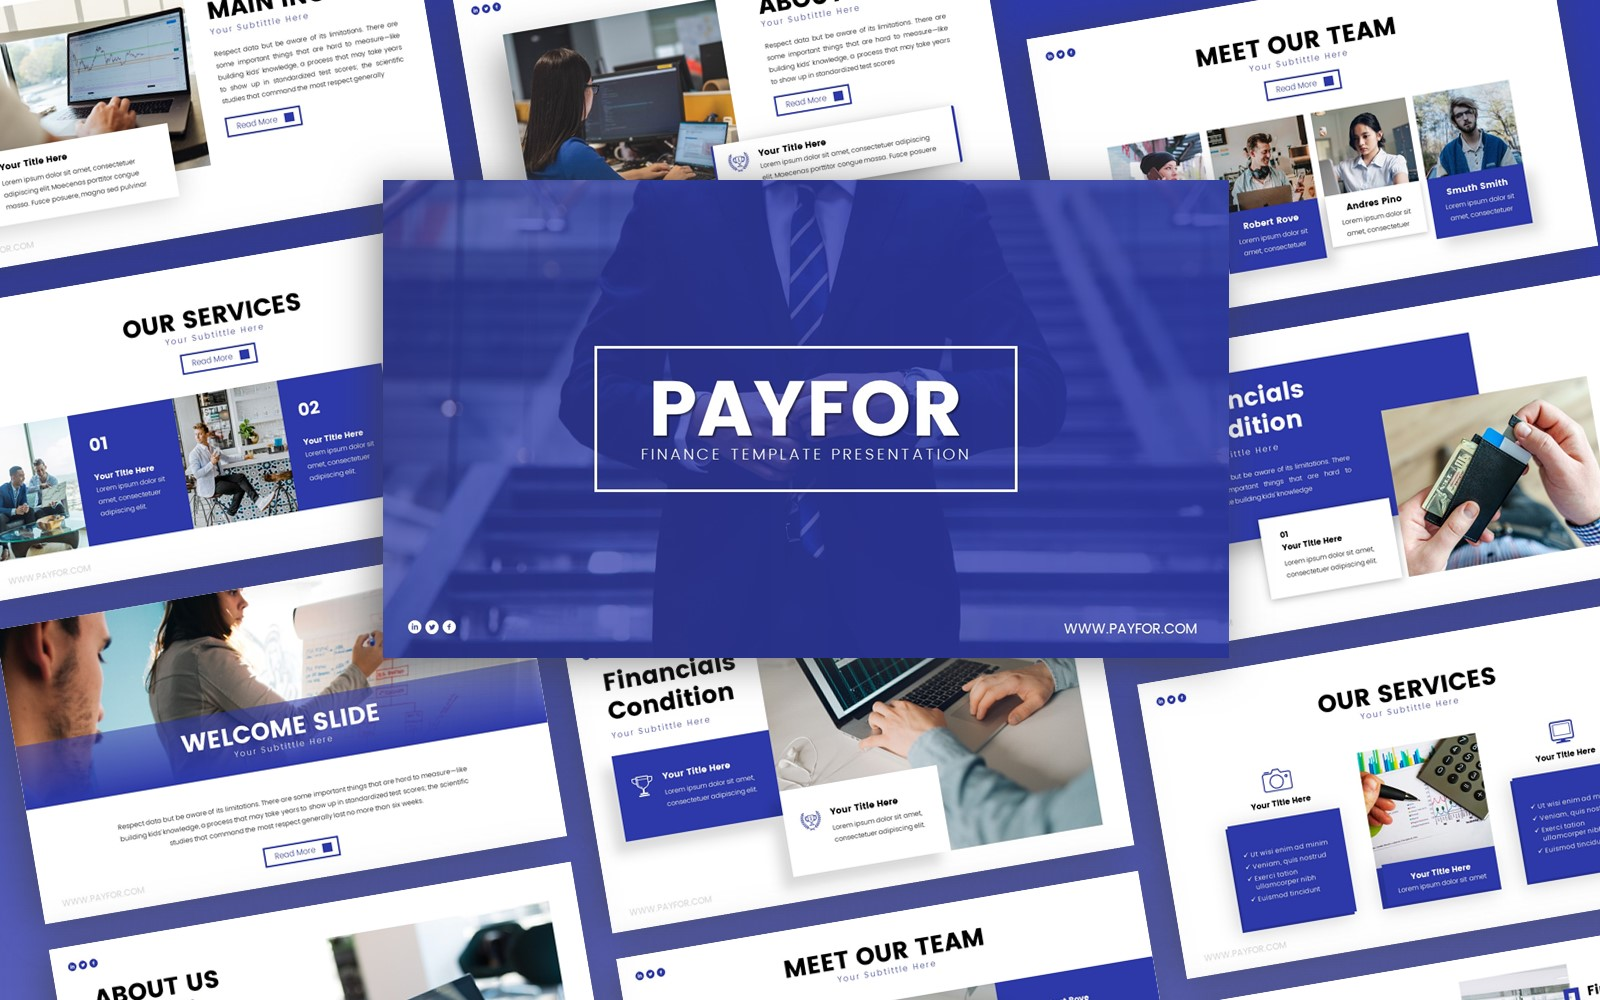 Payfor Finance Presentation PowerPoint Template